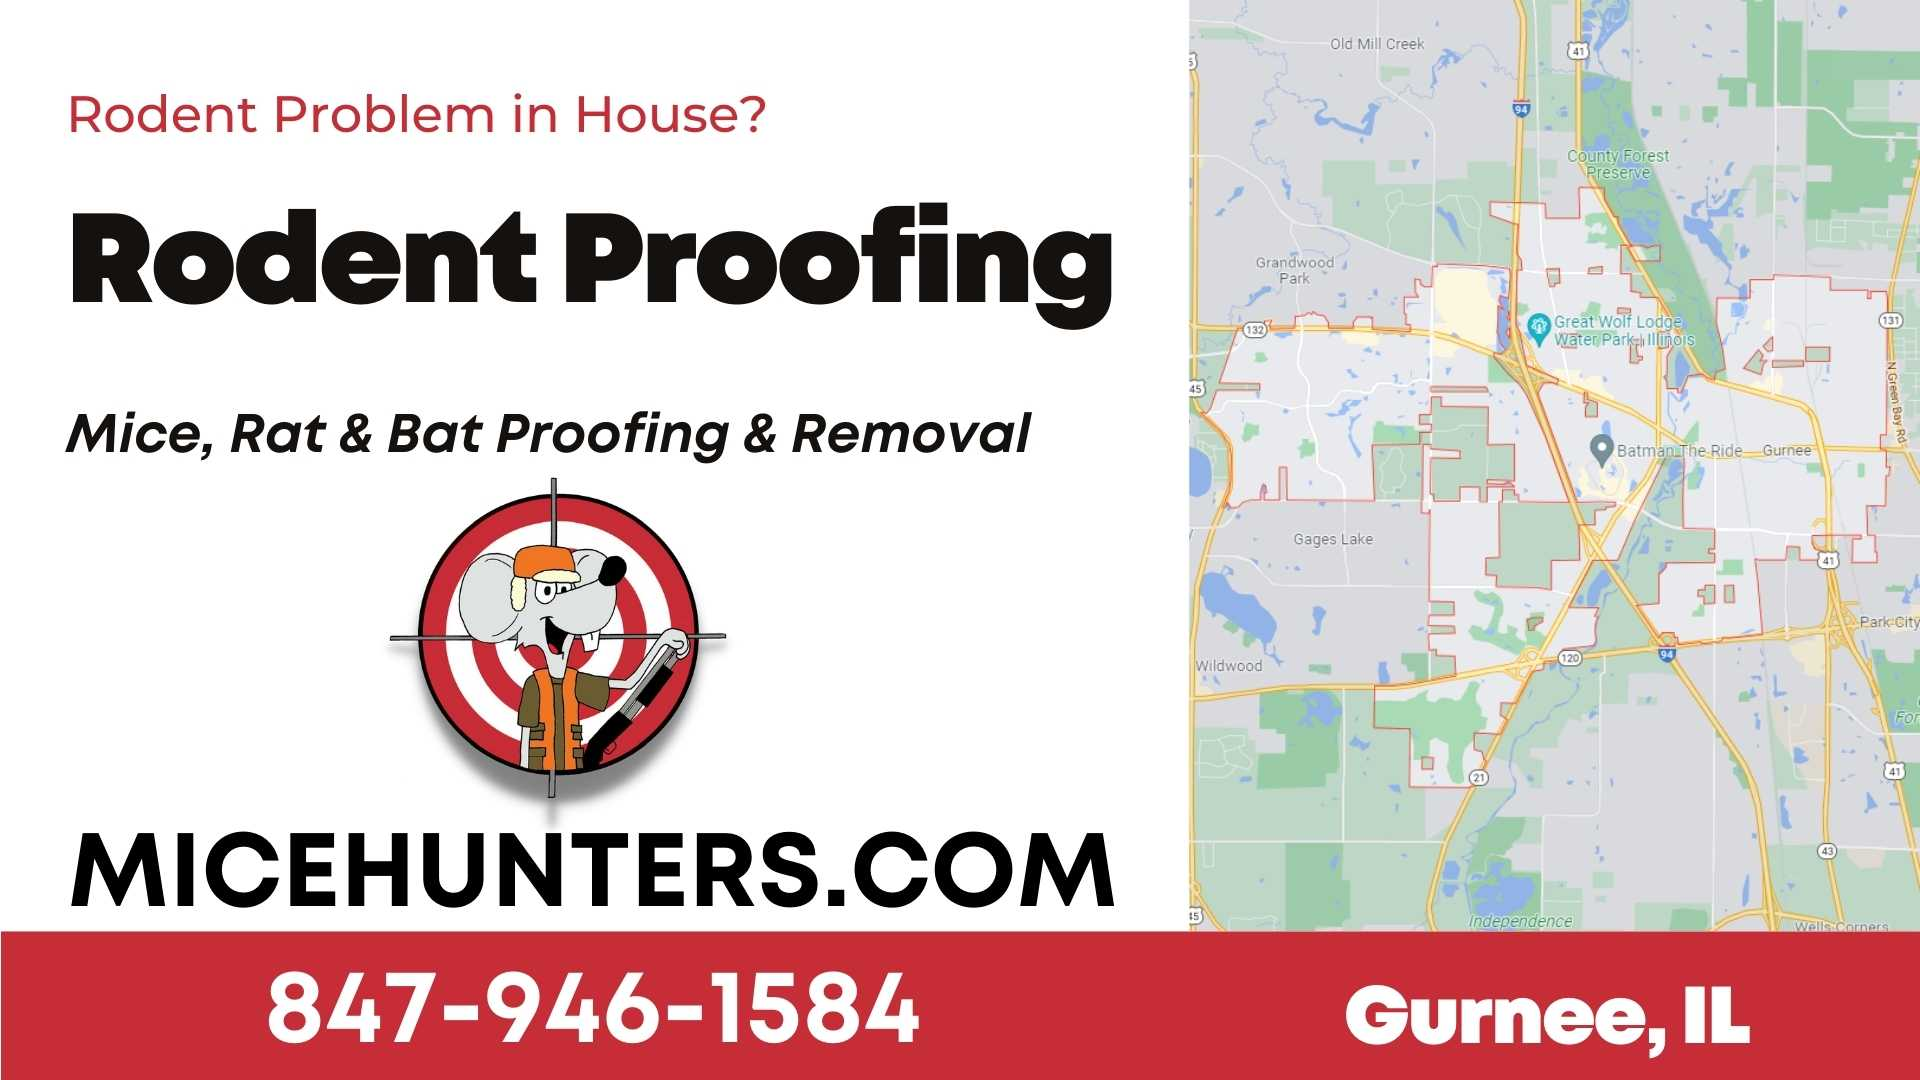 Gurnee Rodent and Mice Proofing Exterminator near me